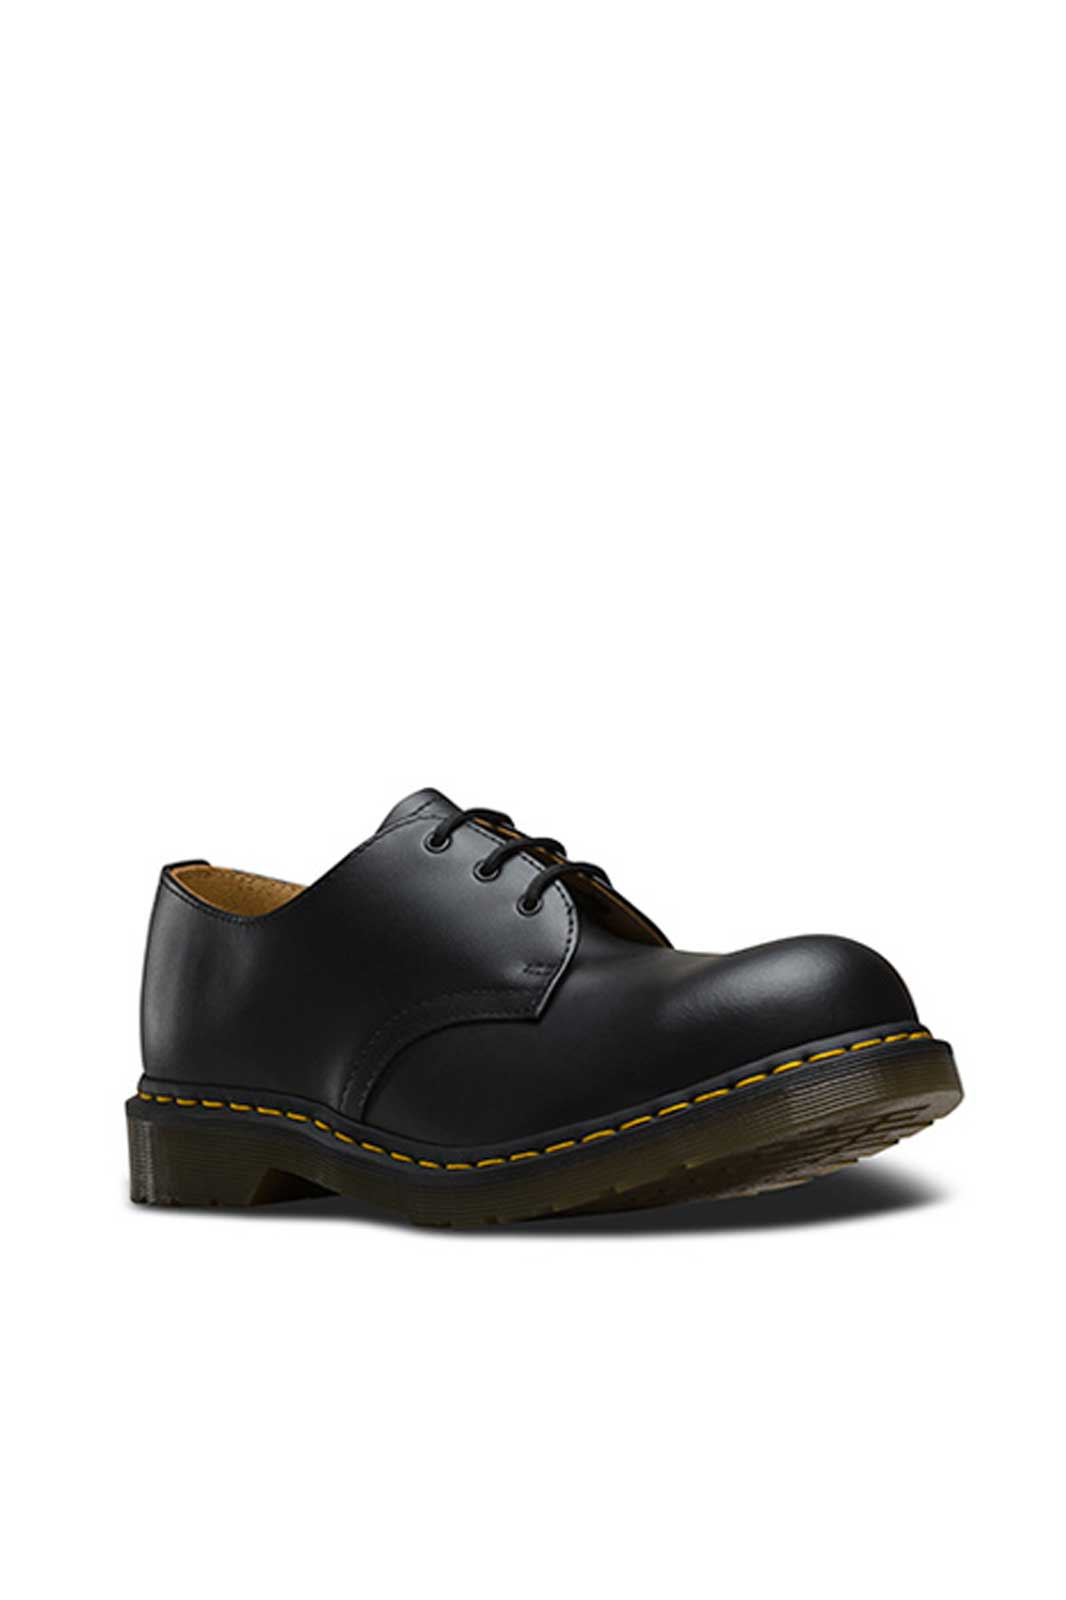 1925 3 eye steeltoe shoe Black